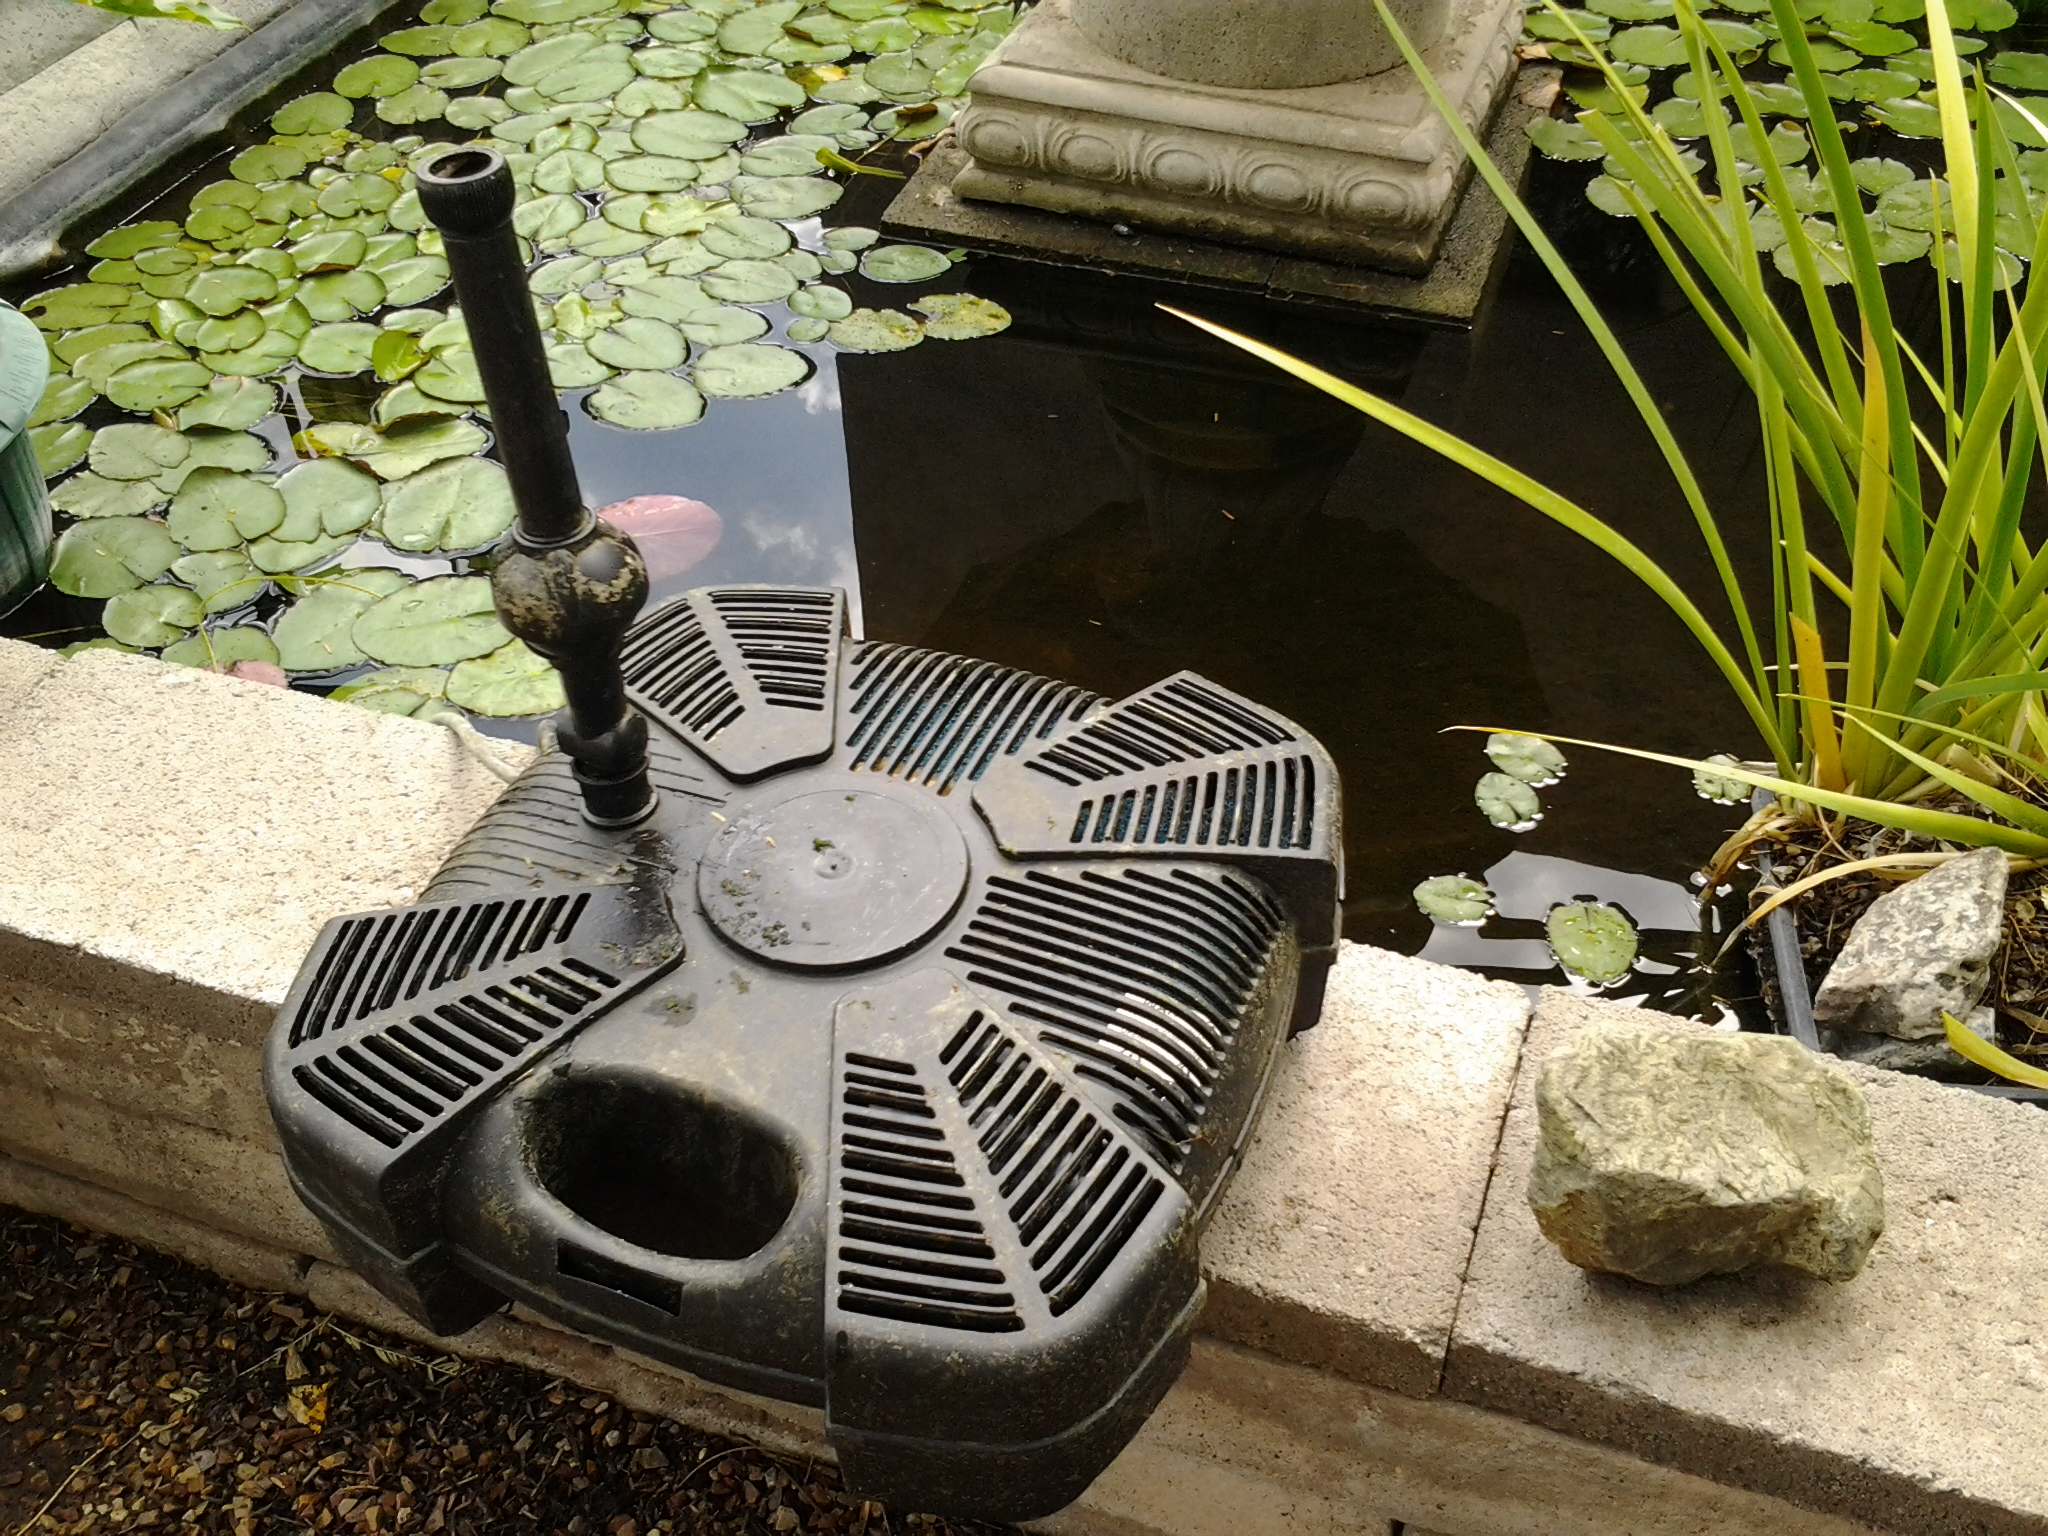 Best pond filter system all in one lifegard pump with uv for Koi pond pump system